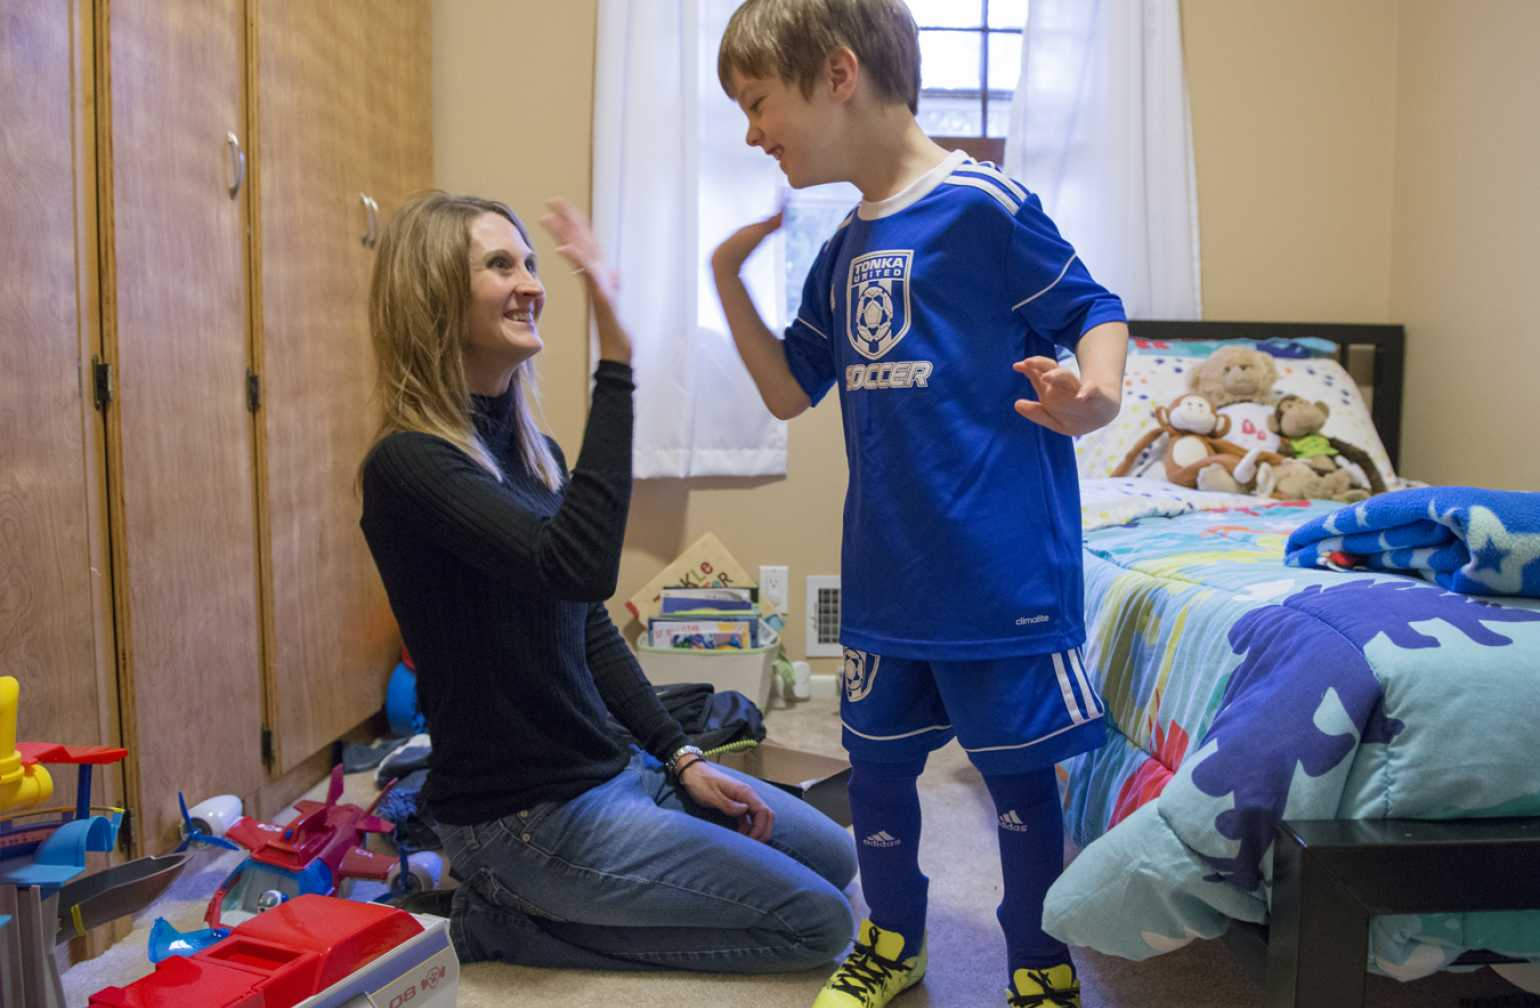 gillette patient ezra at home with mom giving a high five